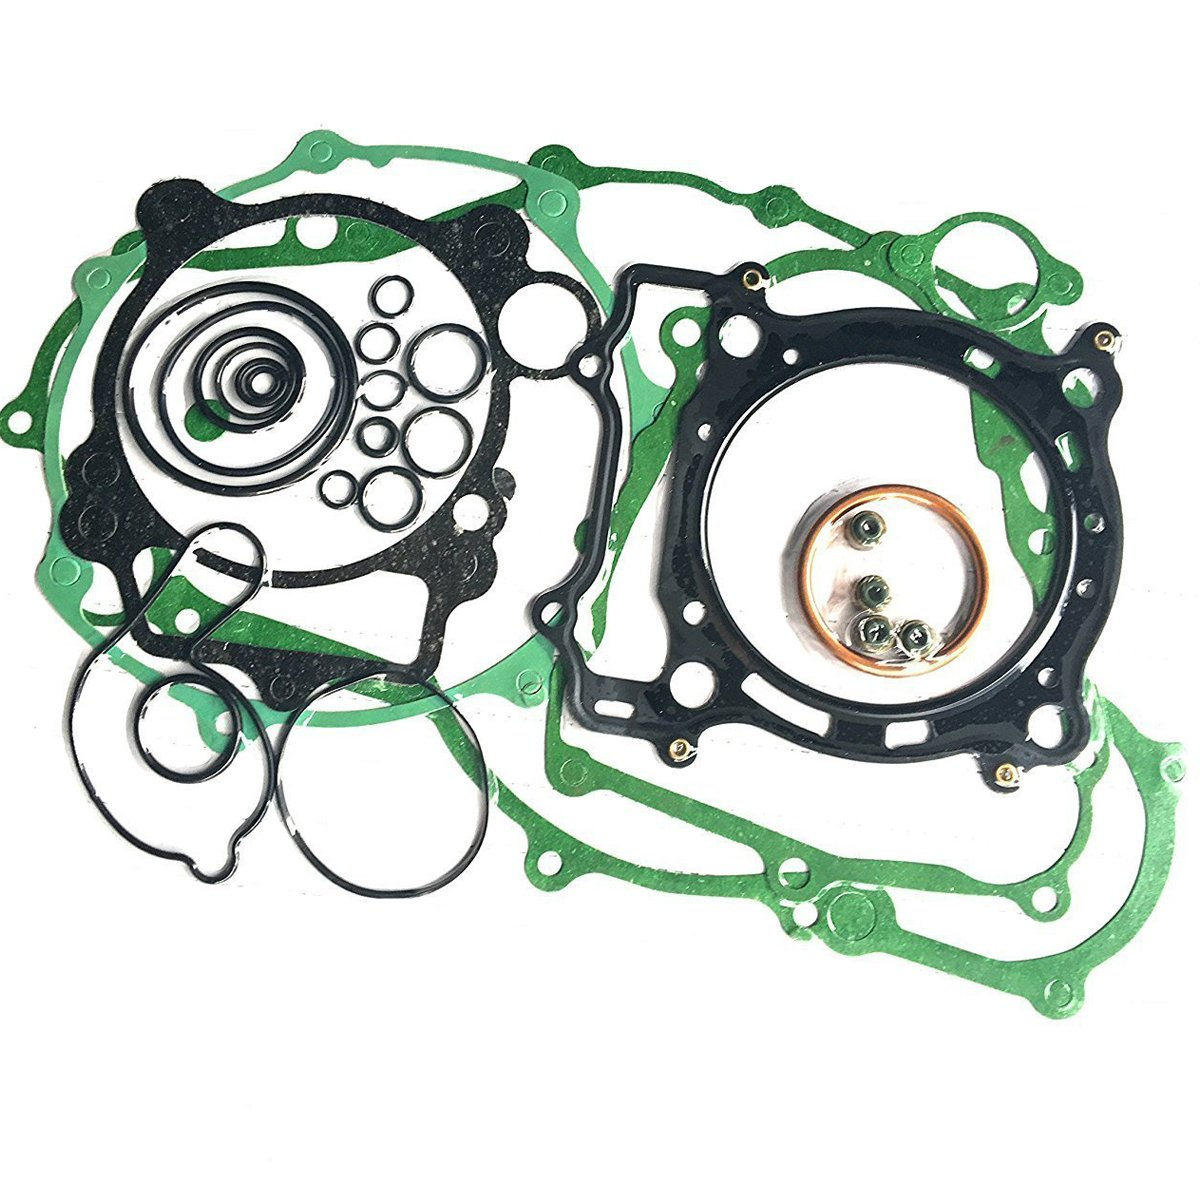 Complete Engine Rebuild Gaskets Seal O-ring Kit Set for Yamaha YFZ 450 by Amhousejoy YANTONG TRADE